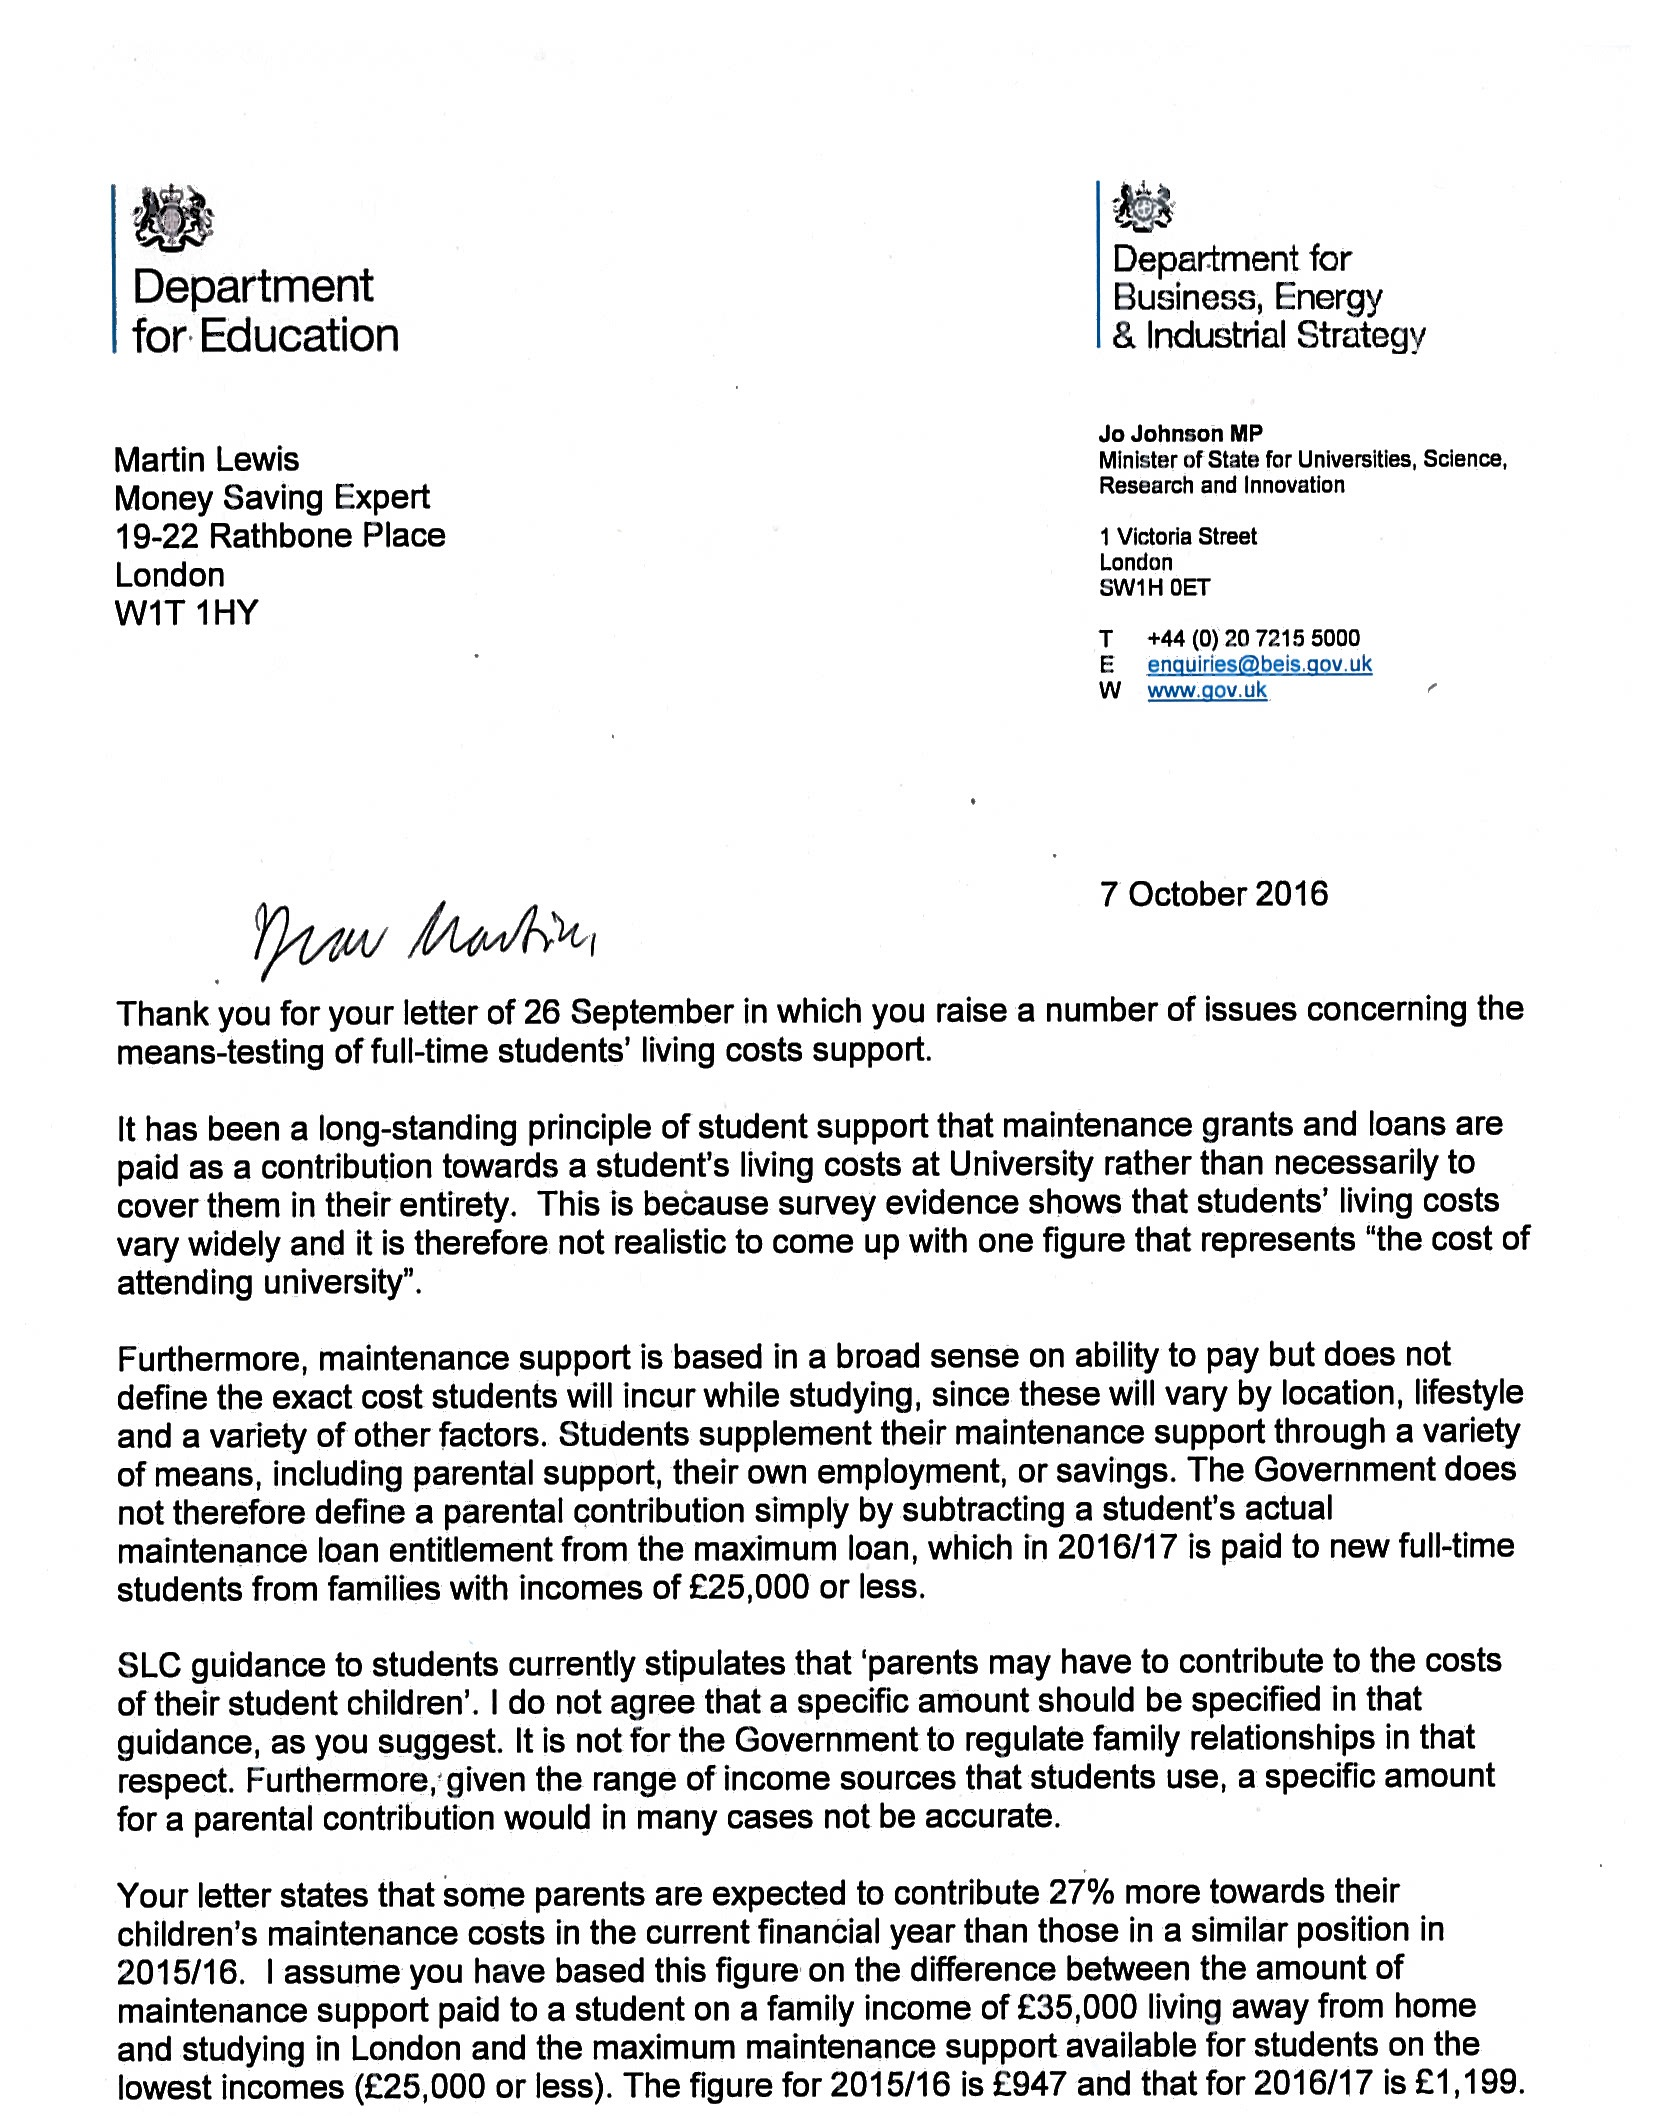 uni minister jo johnson says no to my letter asking please be here s jo johnson s letter in full ignore the date of it we only received it fairly recently